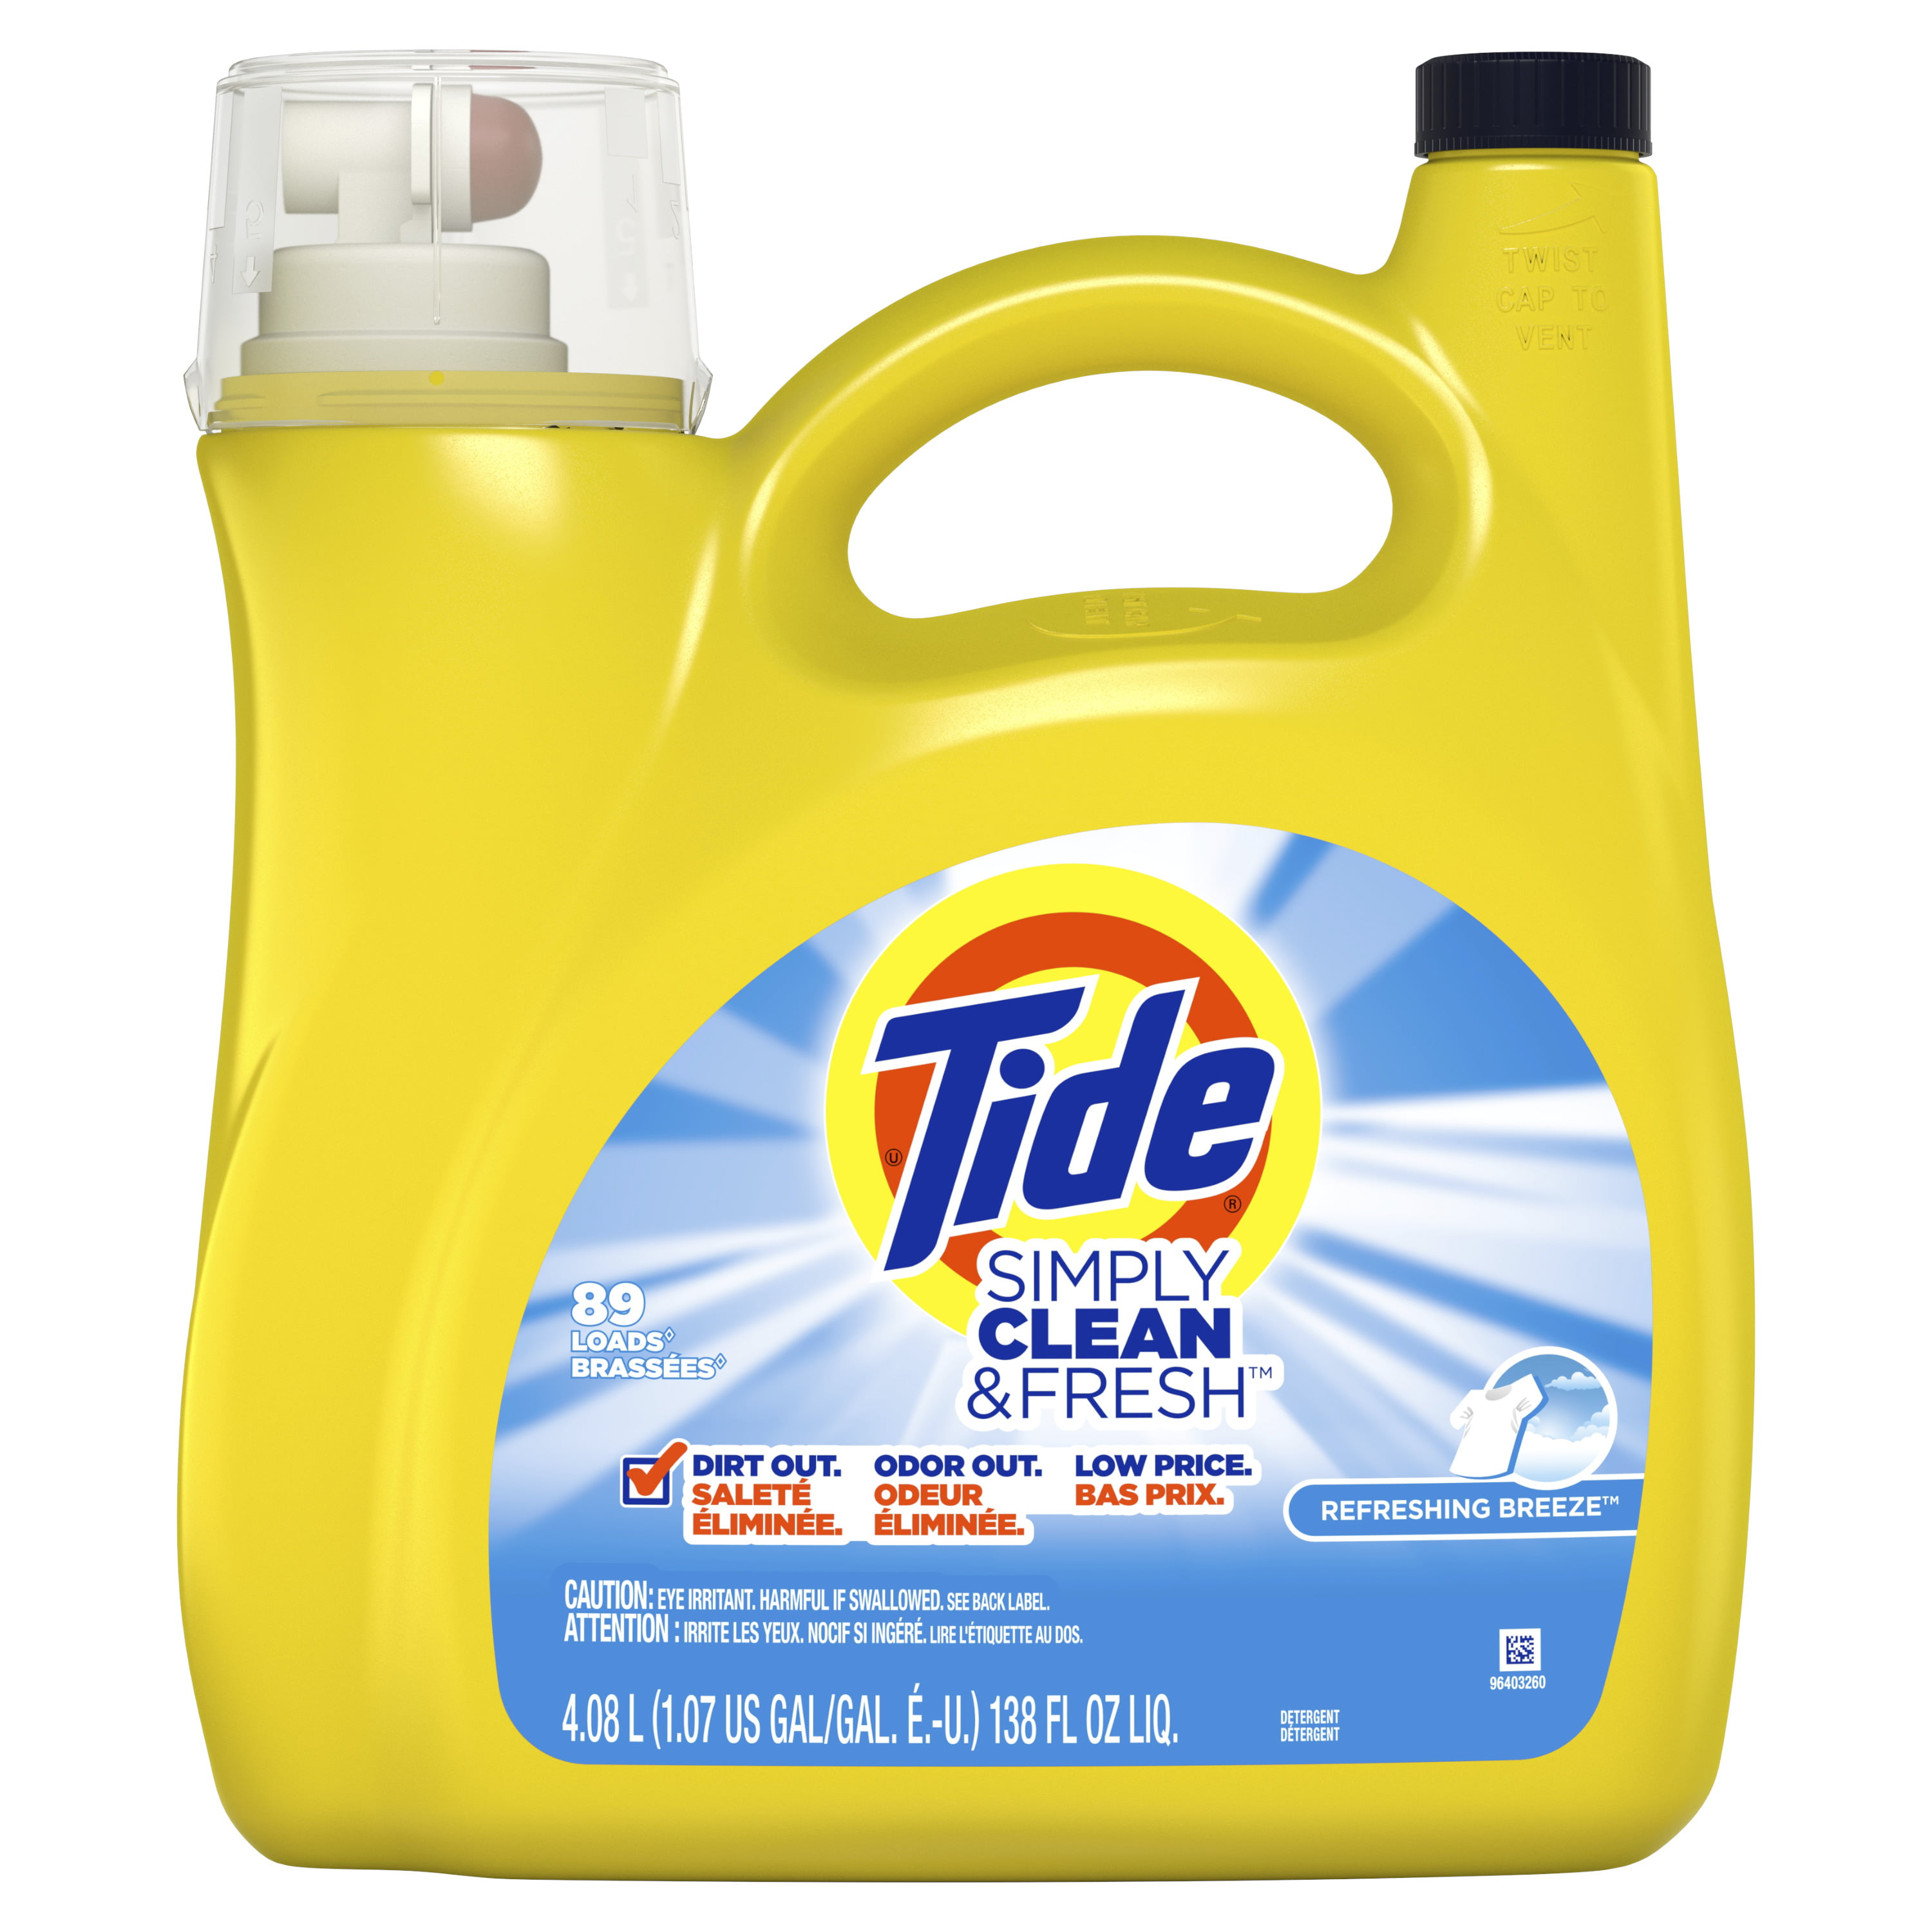 Tide Simply Clean & Fresh Liquid Laundry Detergent, Refreshing Breeze, 89  Loads 138 fl oz - Walmart.com